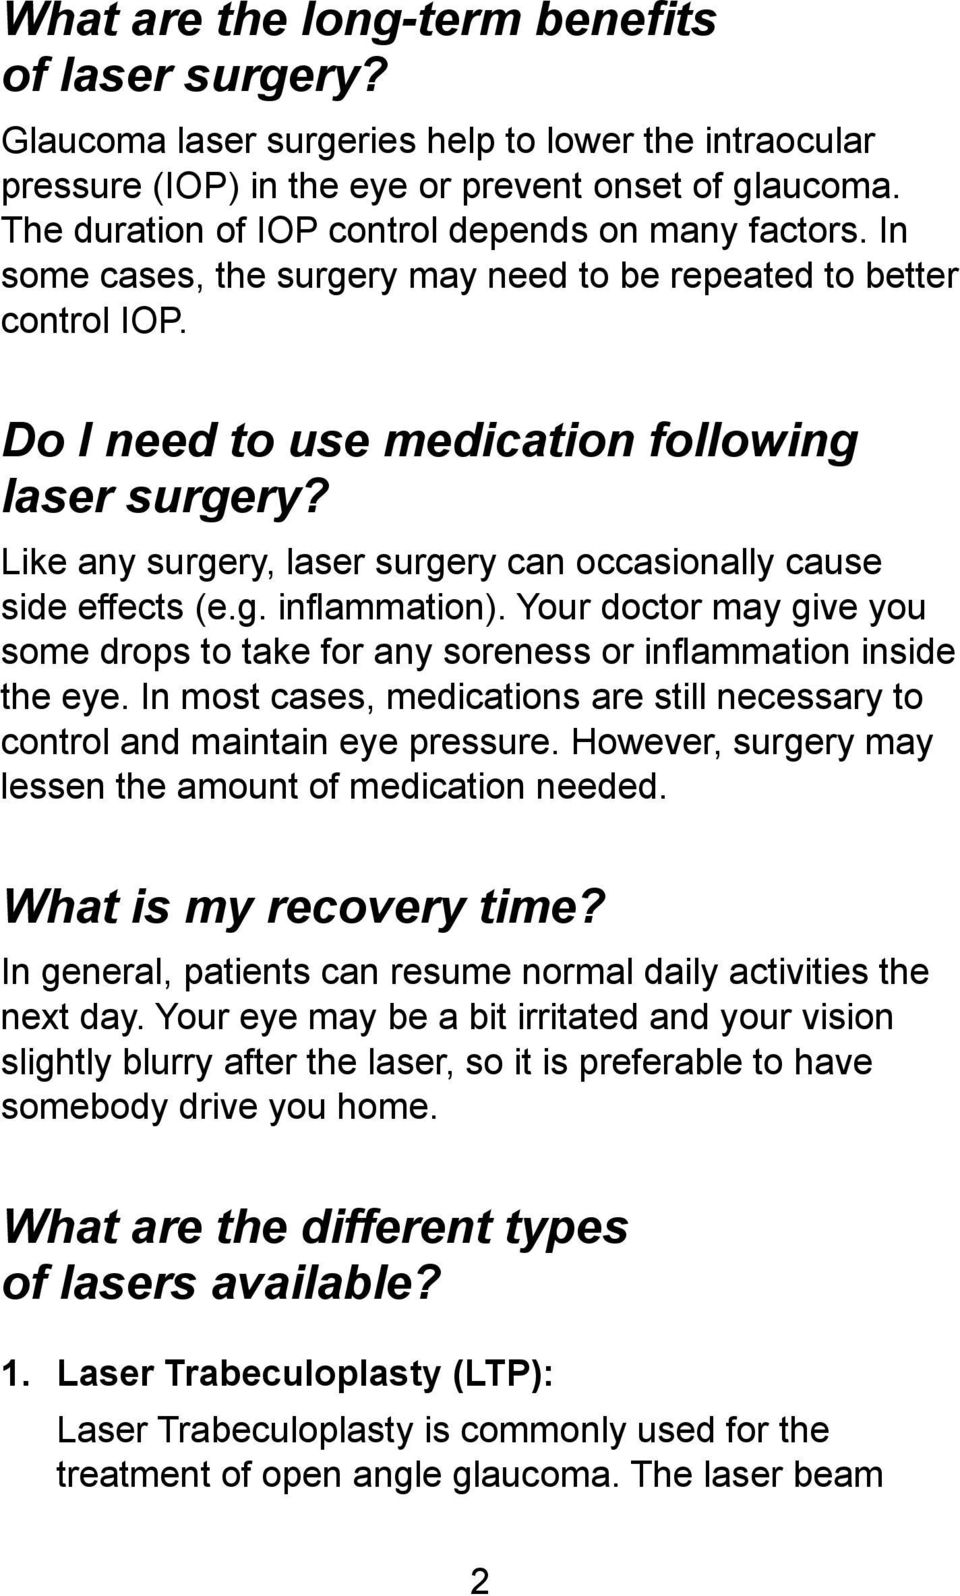 Like any surgery, laser surgery can occasionally cause side effects (e.g. infl ammation). Your doctor may give you some drops to take for any soreness or inflammation inside the eye.